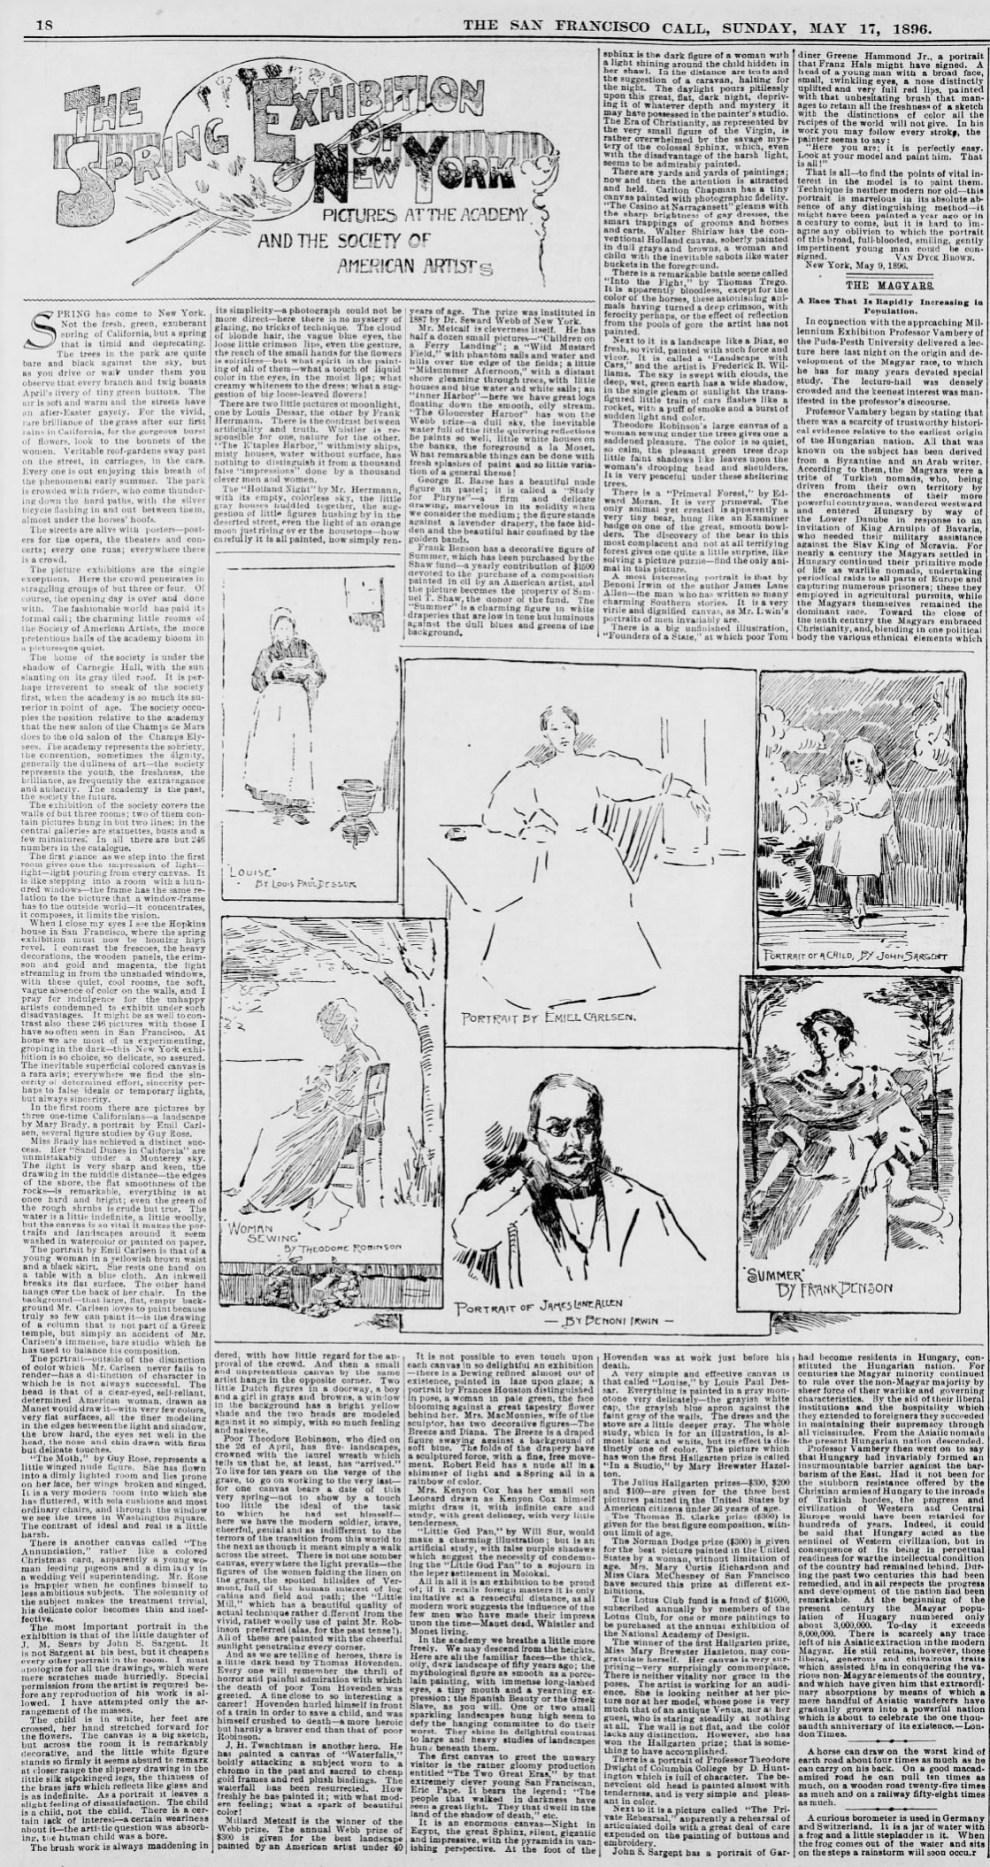 "The San Francisco Call, San Francisco, CA, ""The Spring Exhibition of New York Pictures at the Academy and the Society of American Artists"", Sunday, May 17, 1896, first edition, page 18, illustrated: B&W"